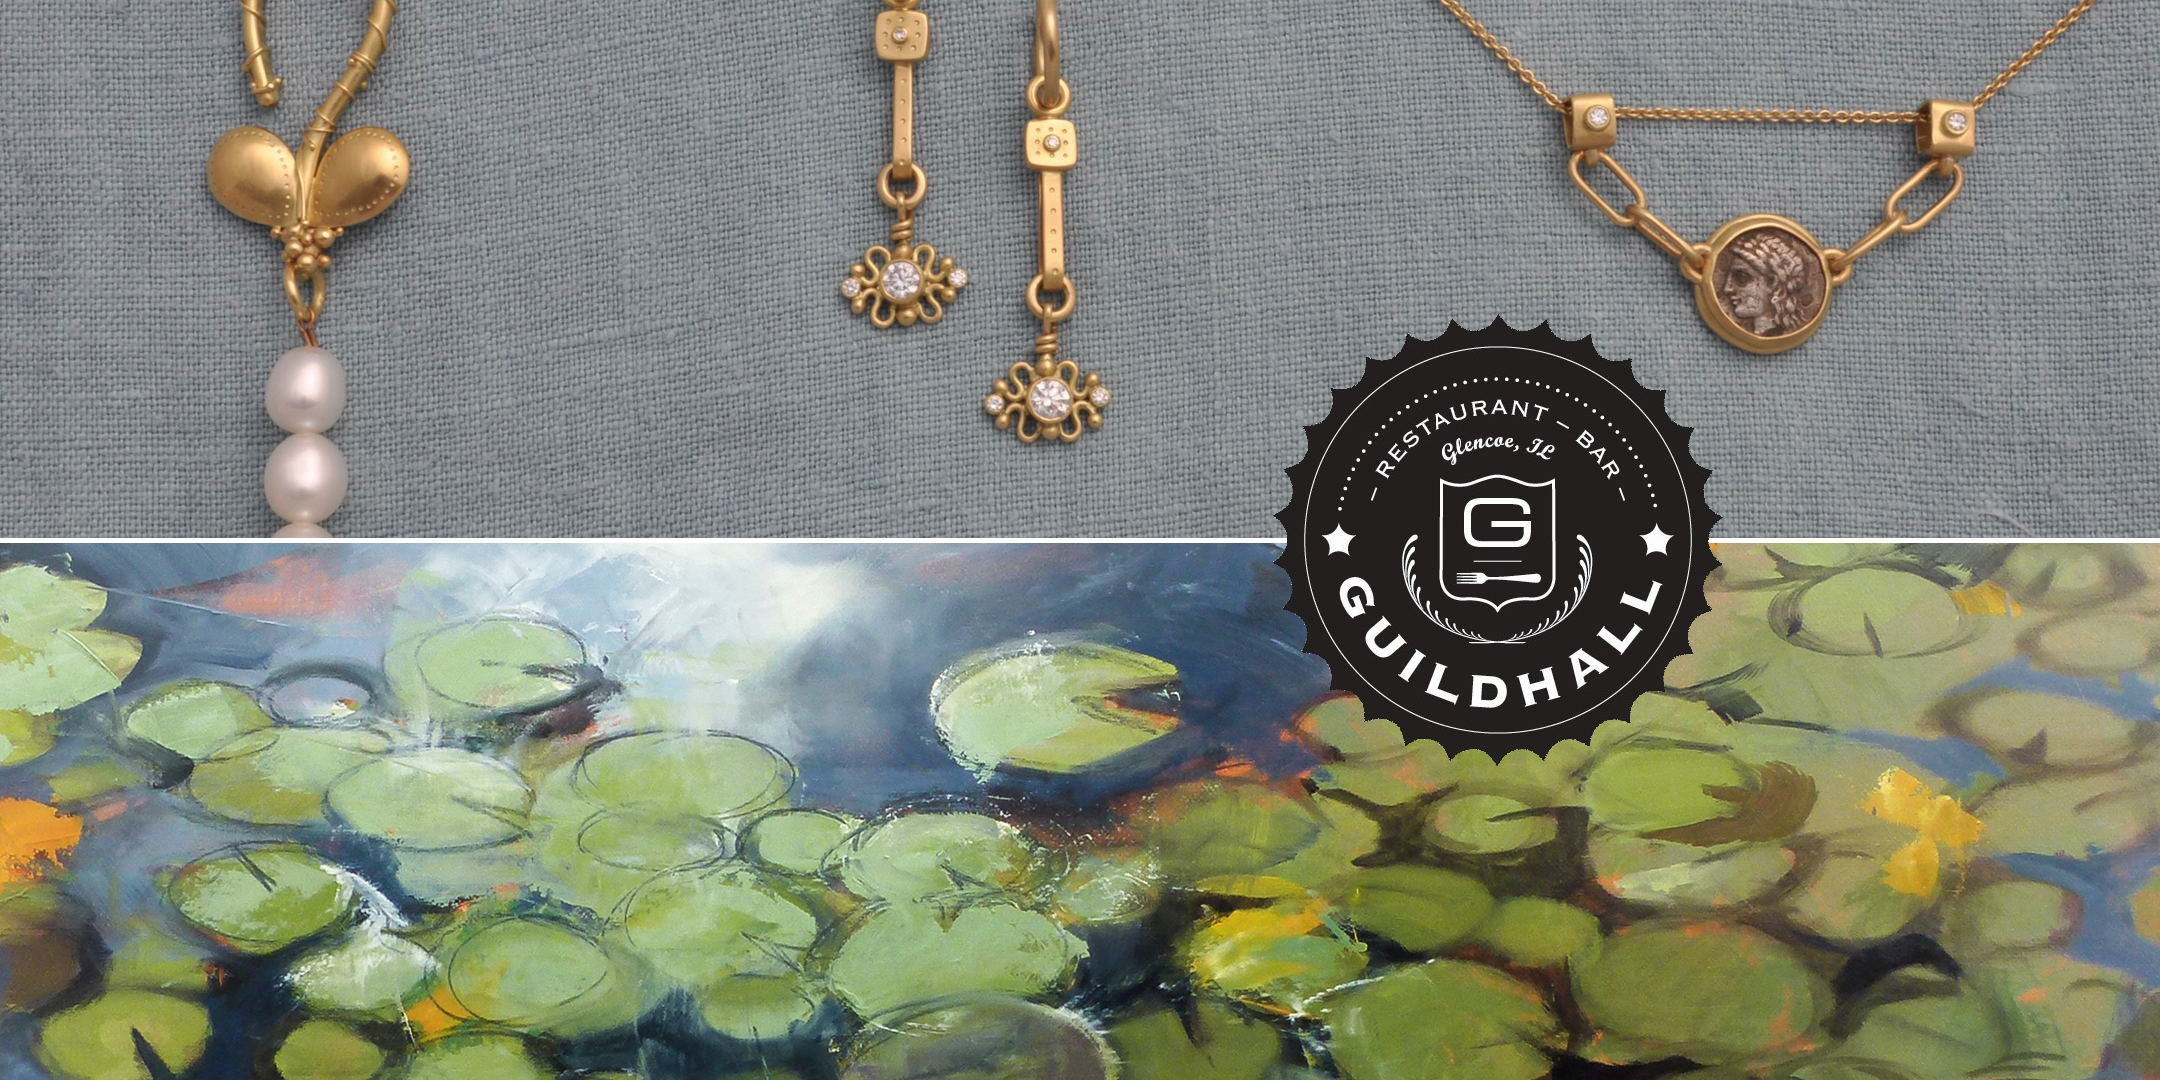 Holiday Art Show at Guildhall Restaurant